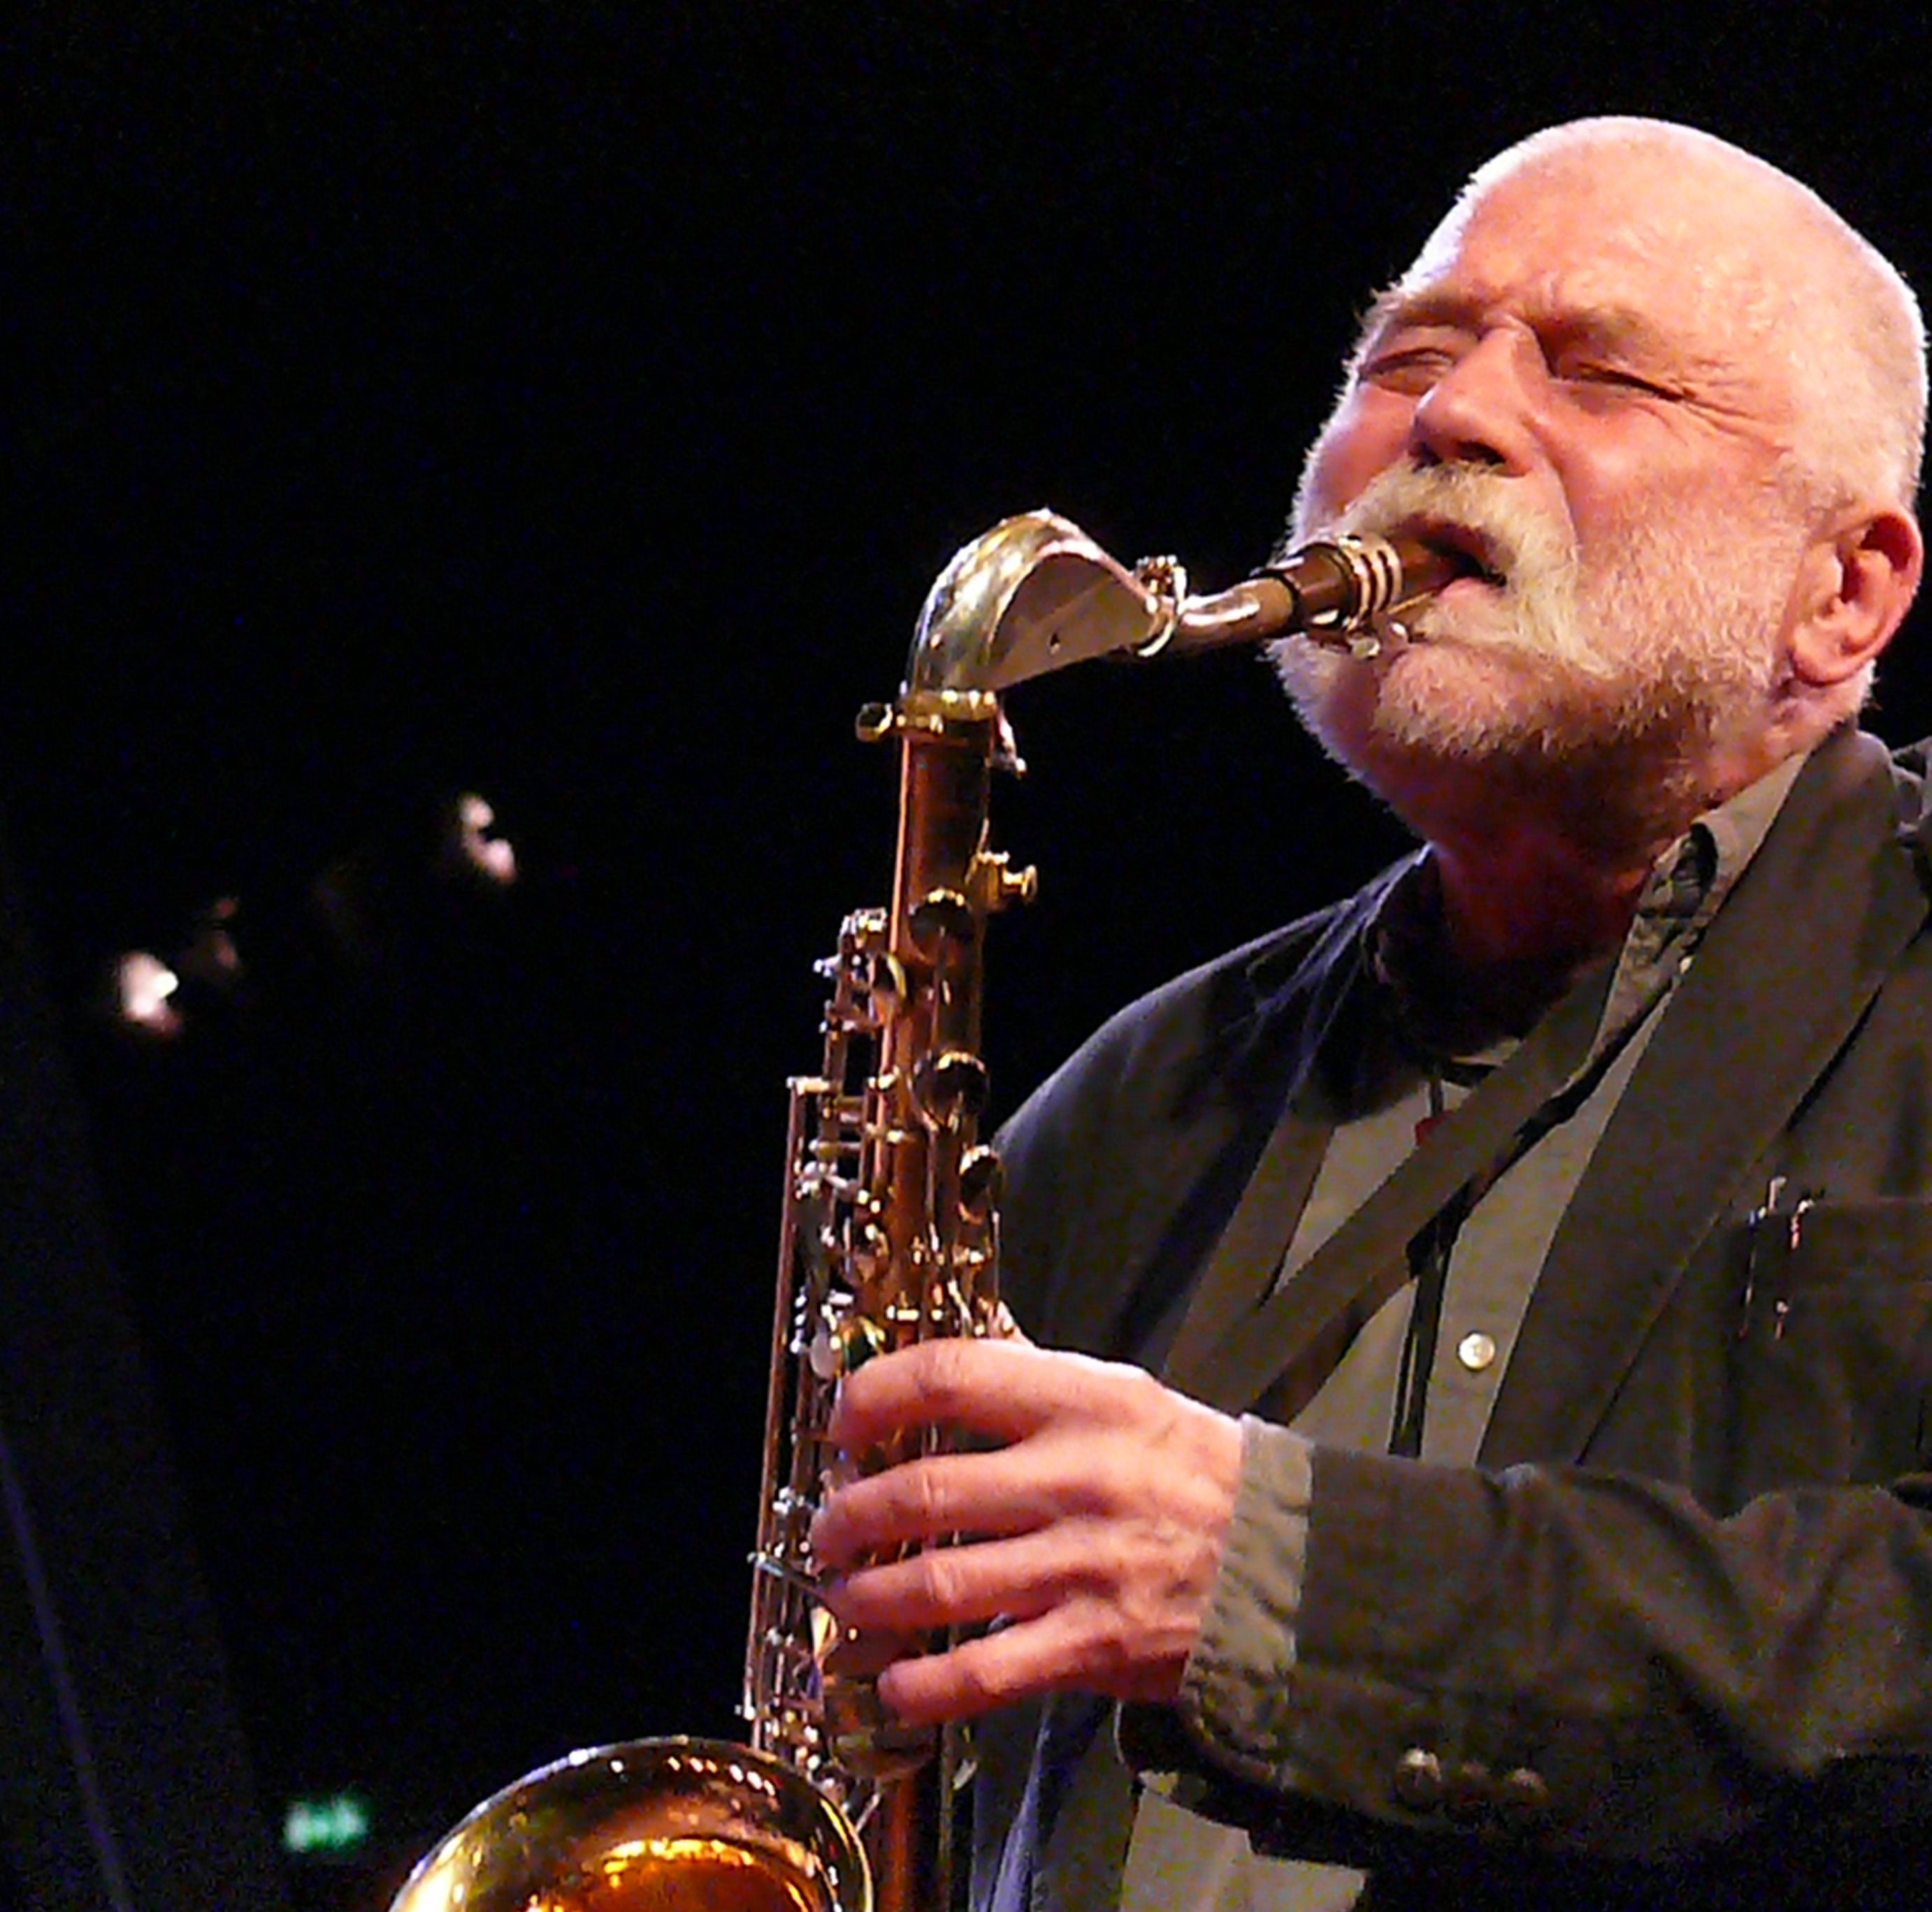 Peter Brotzmann at the Bimhuis in Amsterdam, 13 February 2009